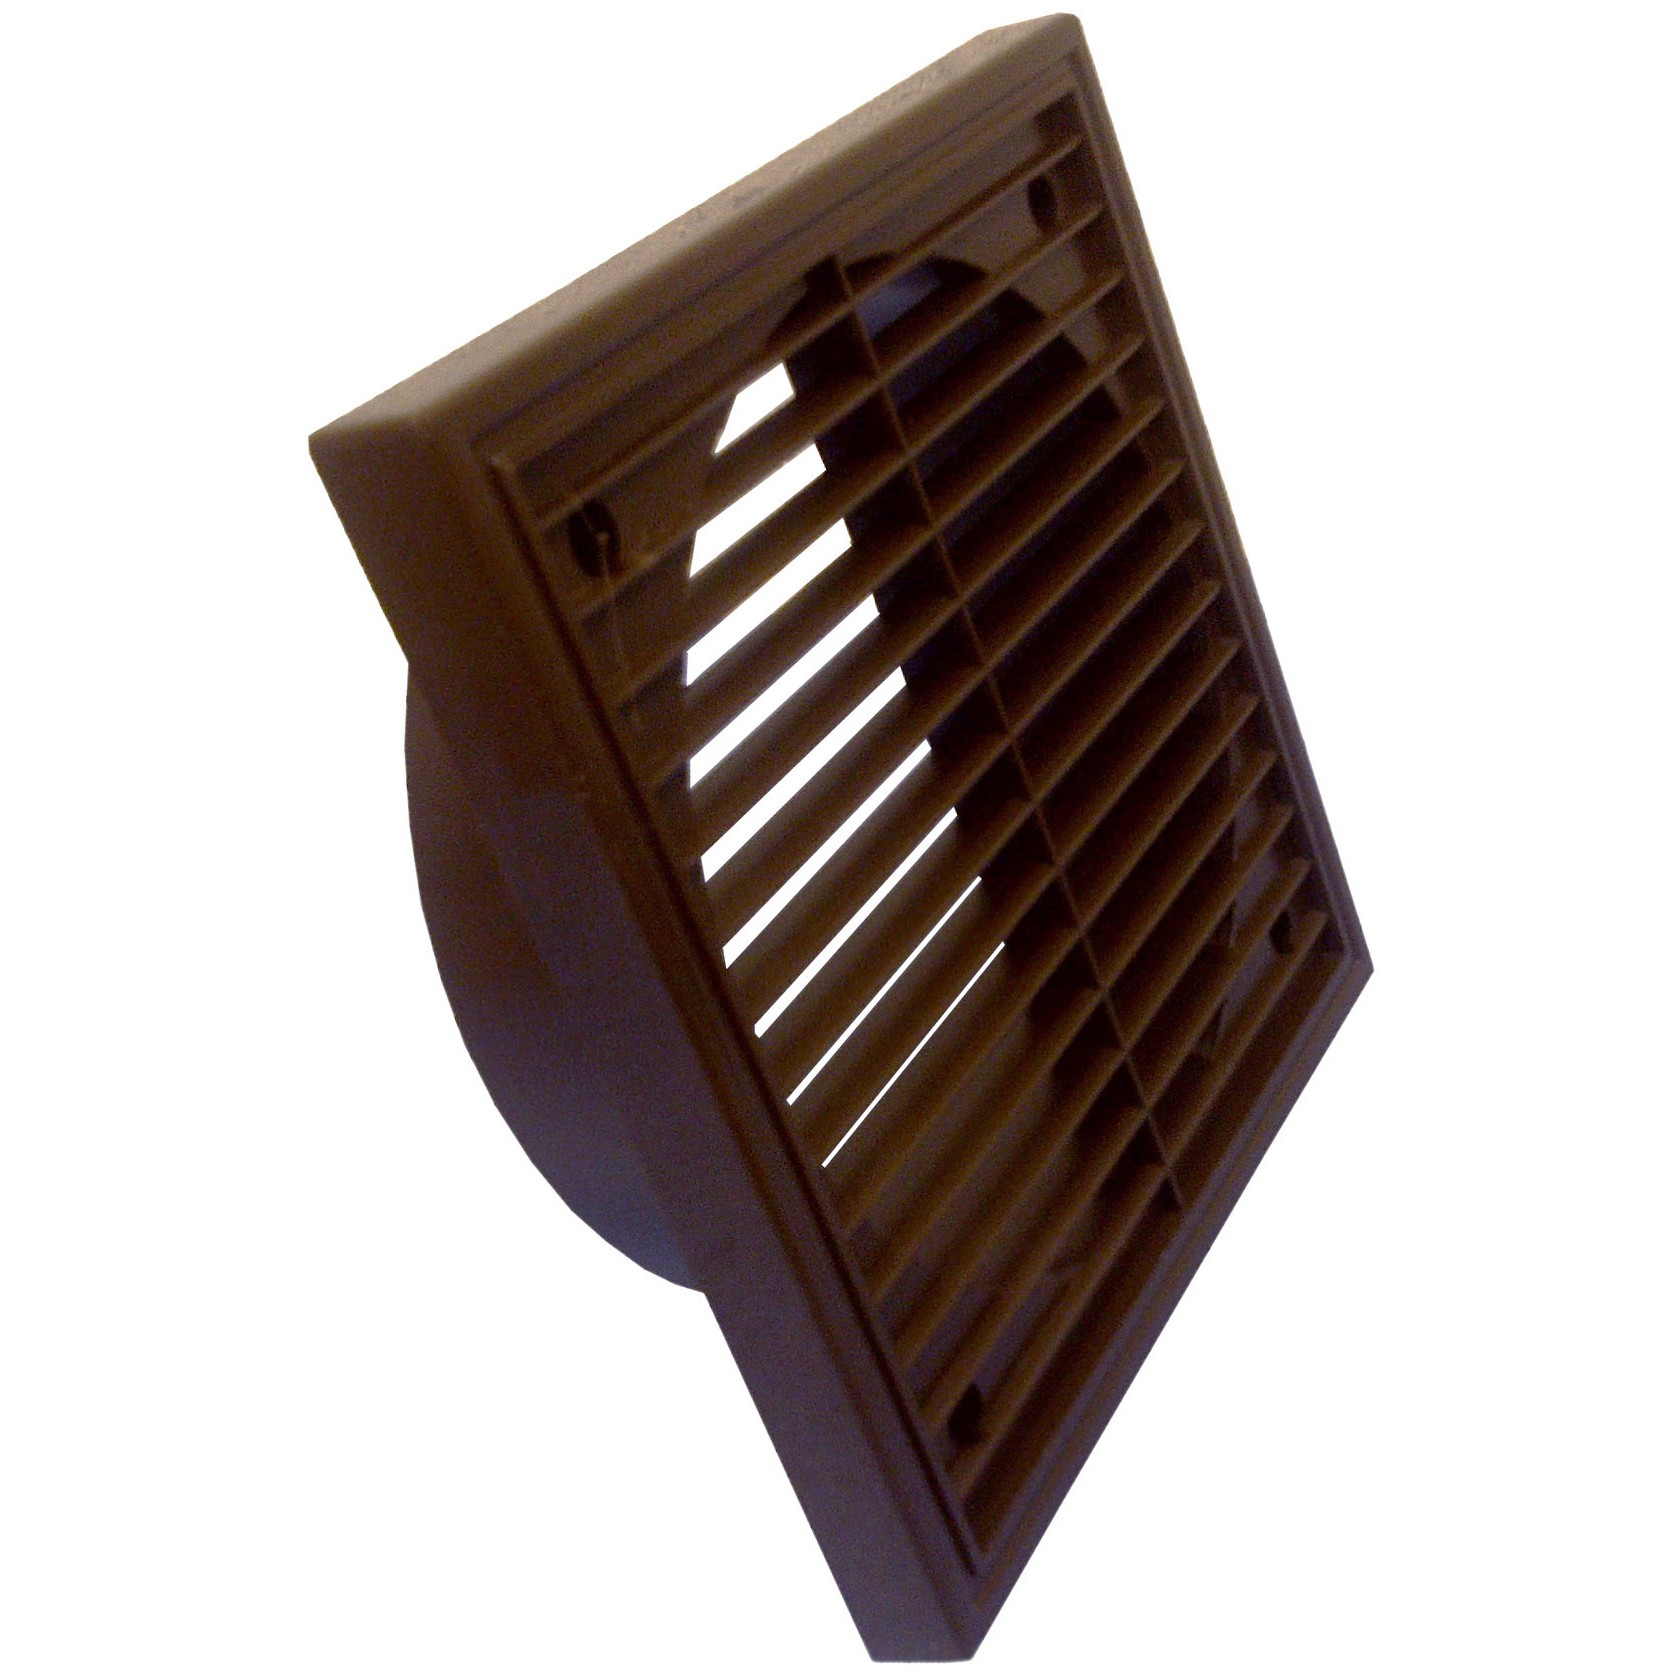 Manrose Round Ducting Pipe Fixed Grille Vent Outlet - Brown, 150mm